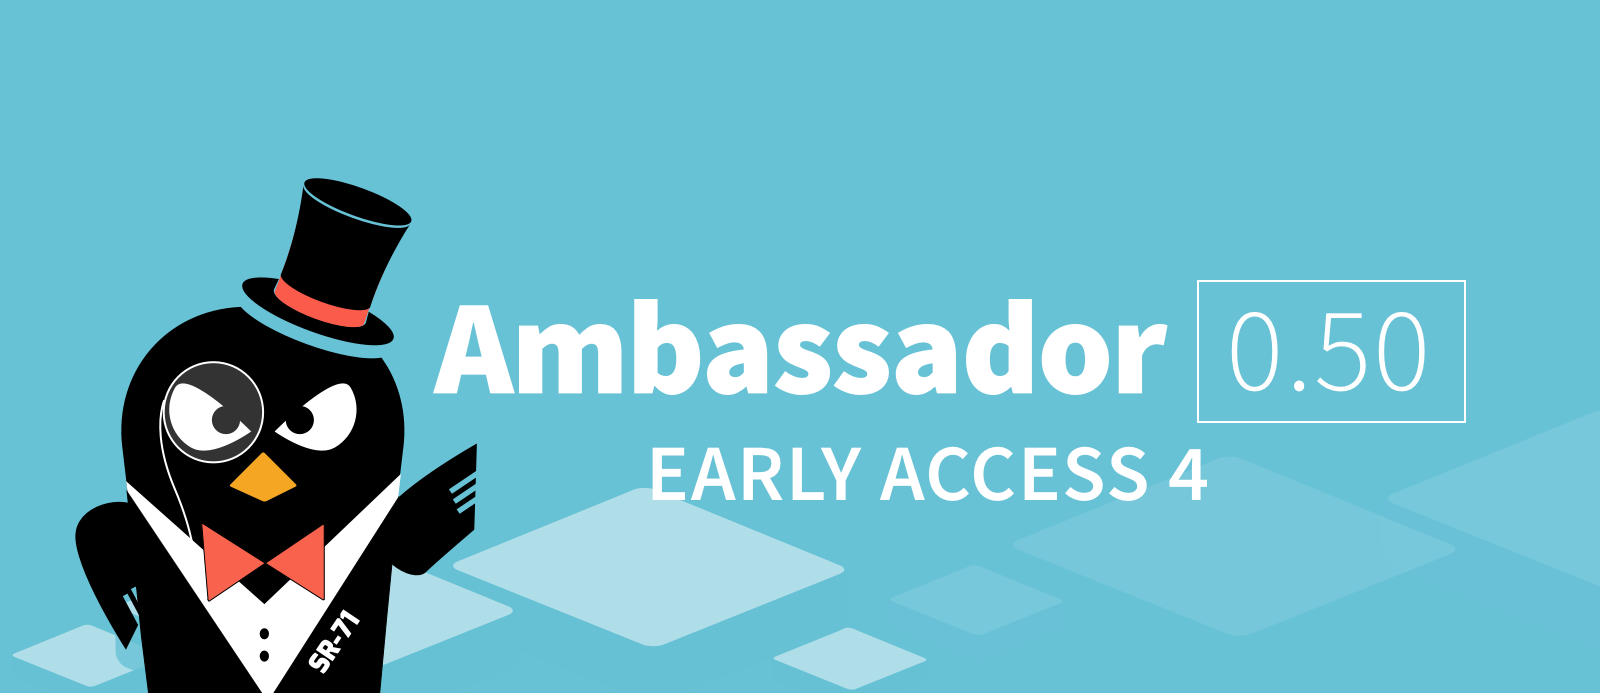 Ambassador 0 50 EA 4 is available, supporting rate limiting and